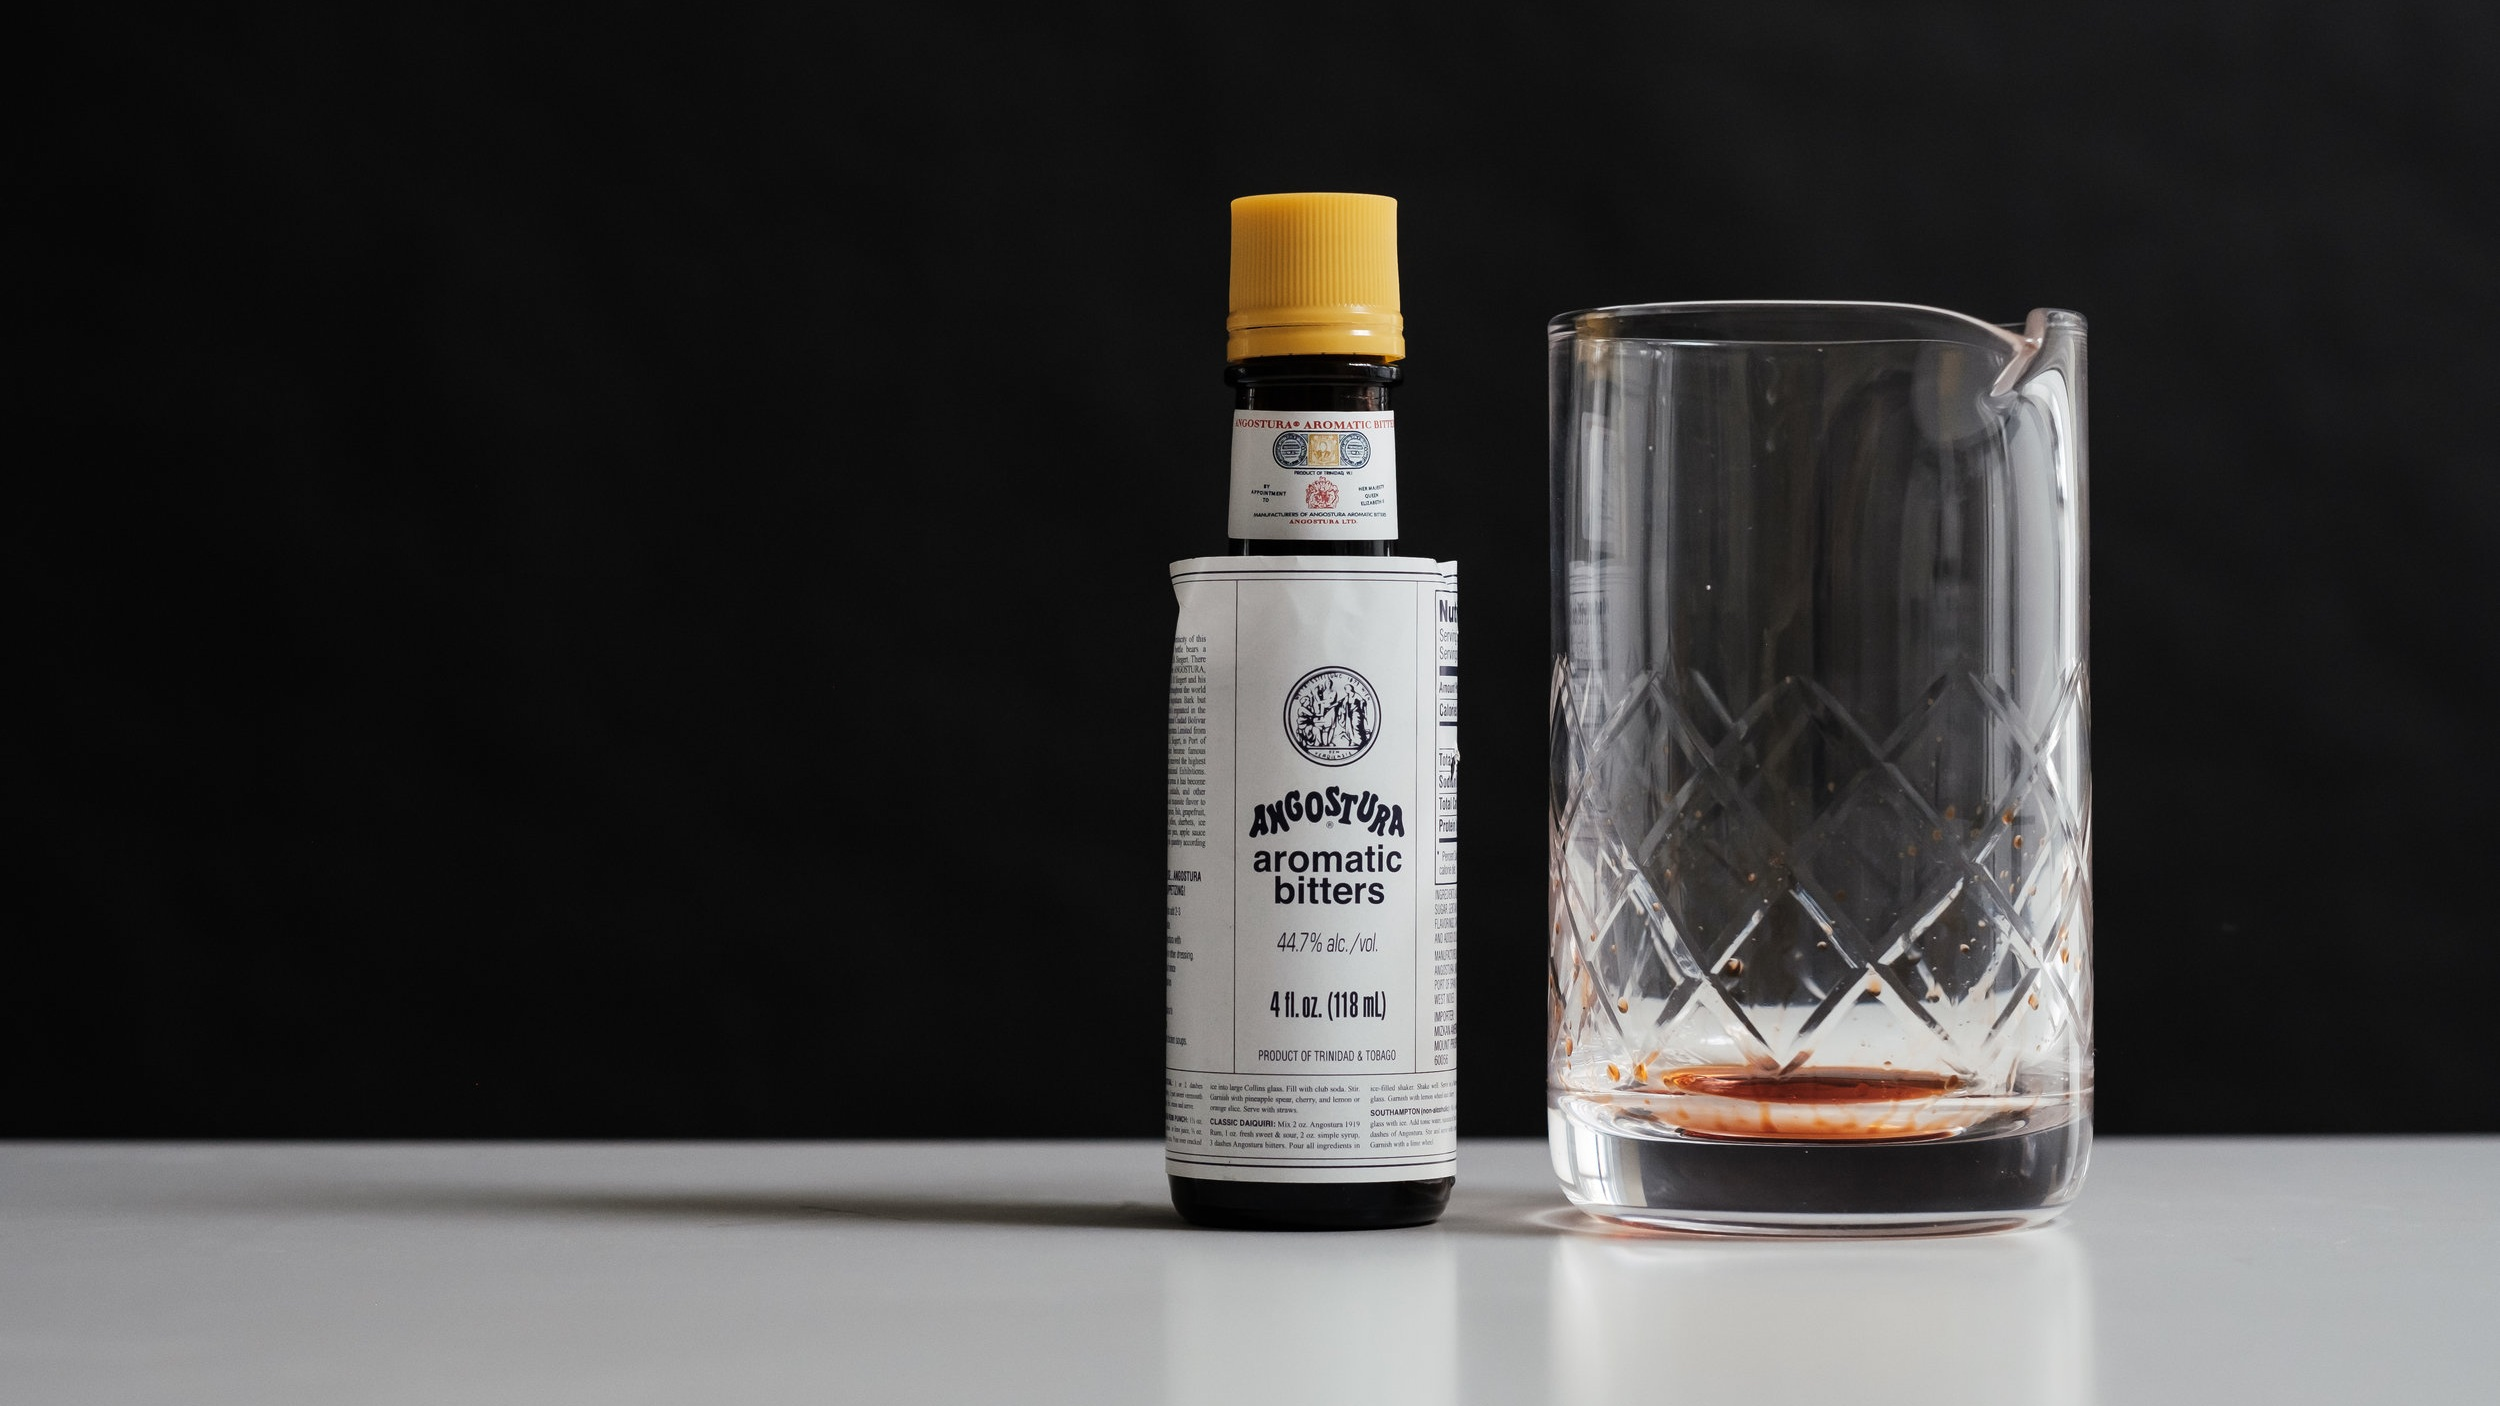 Add 2-3 dashes of aromatic bitters. -